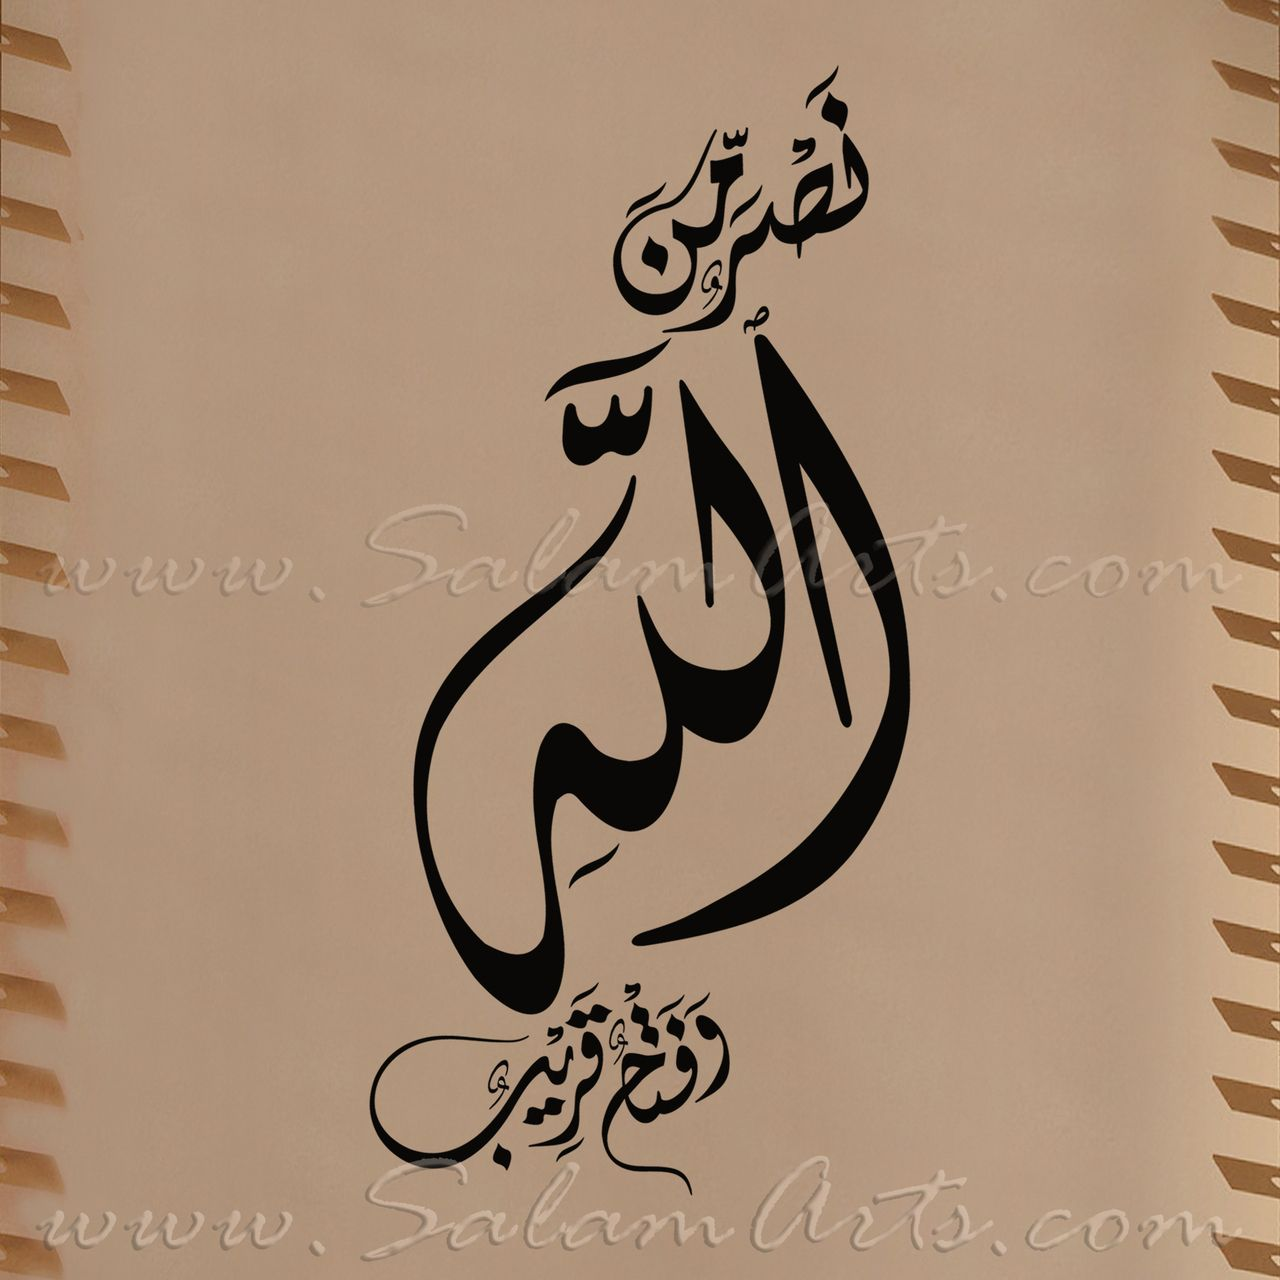 Help From Allah And A Speedy Victory Diwani Islamic Art Calligraphy Islamic Calligraphy Painting Arabic Calligraphy Art